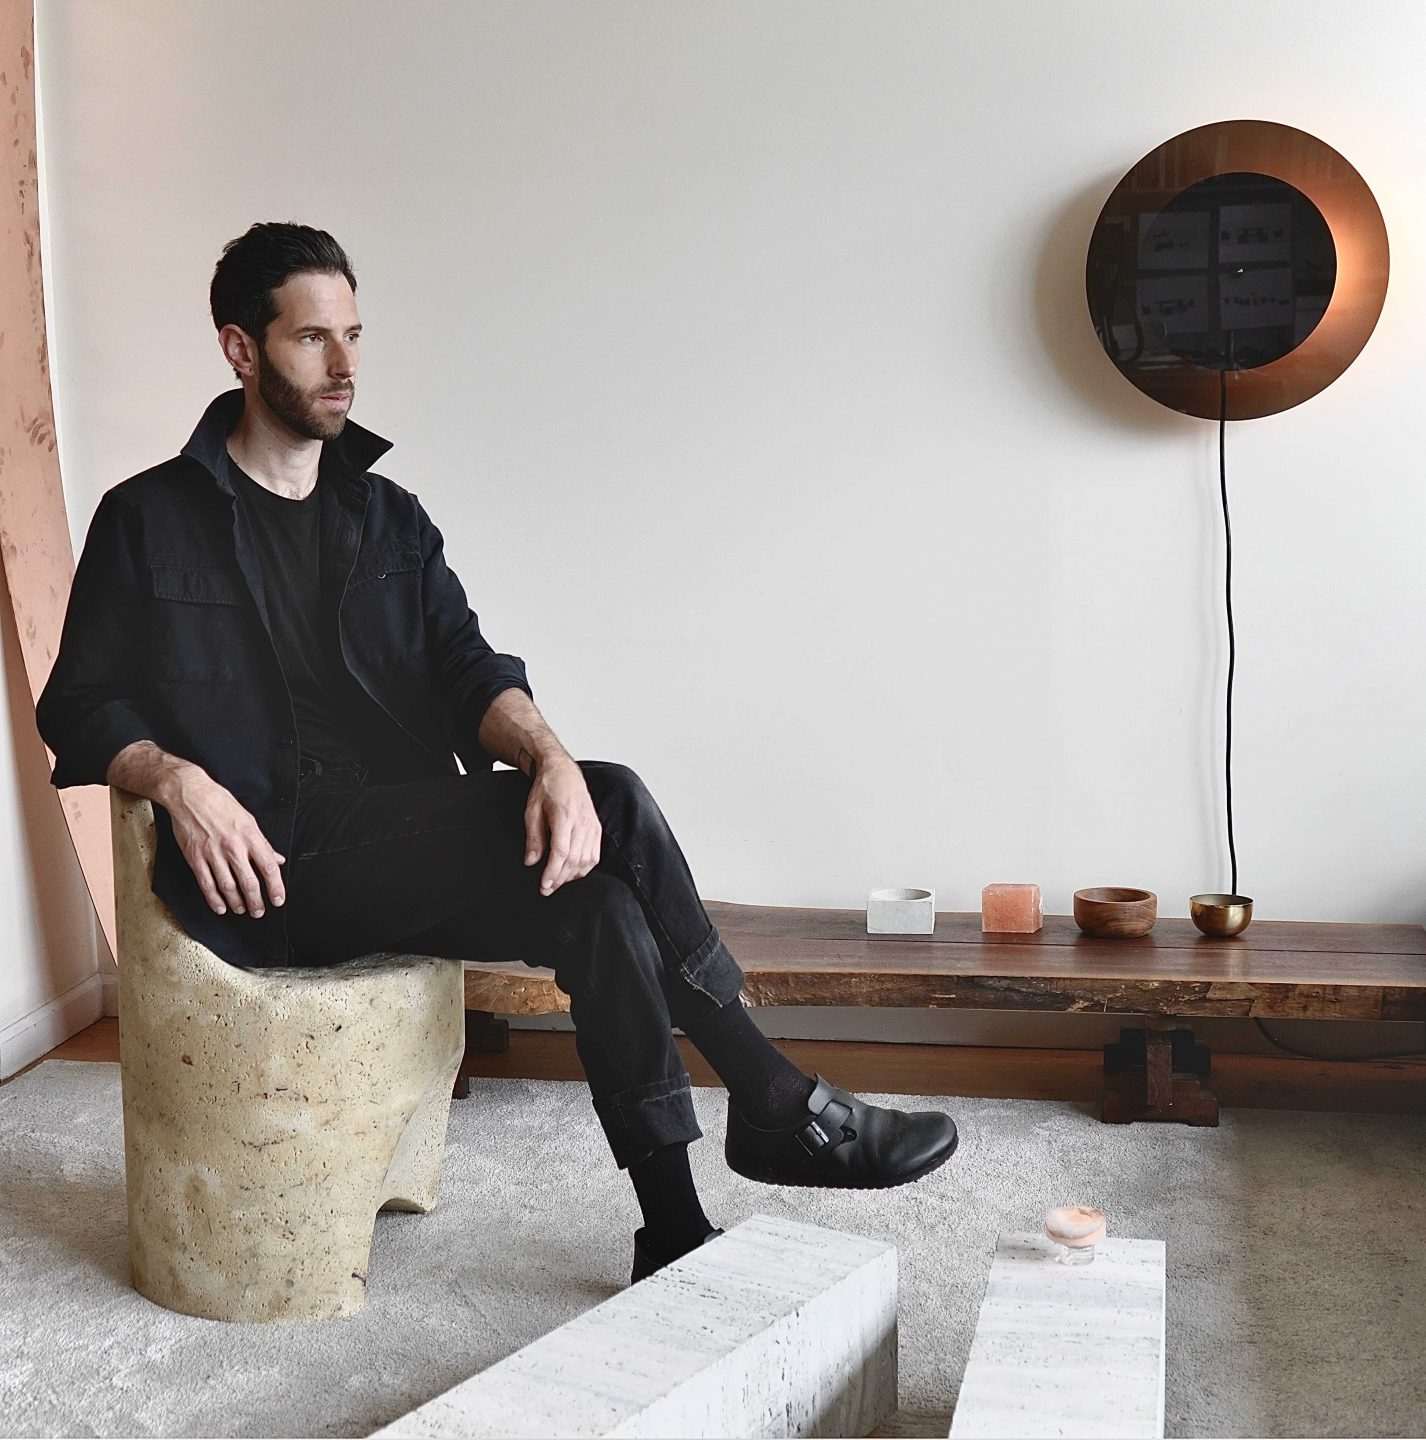 The designer's work explores ideas of time, balance, and sustainability